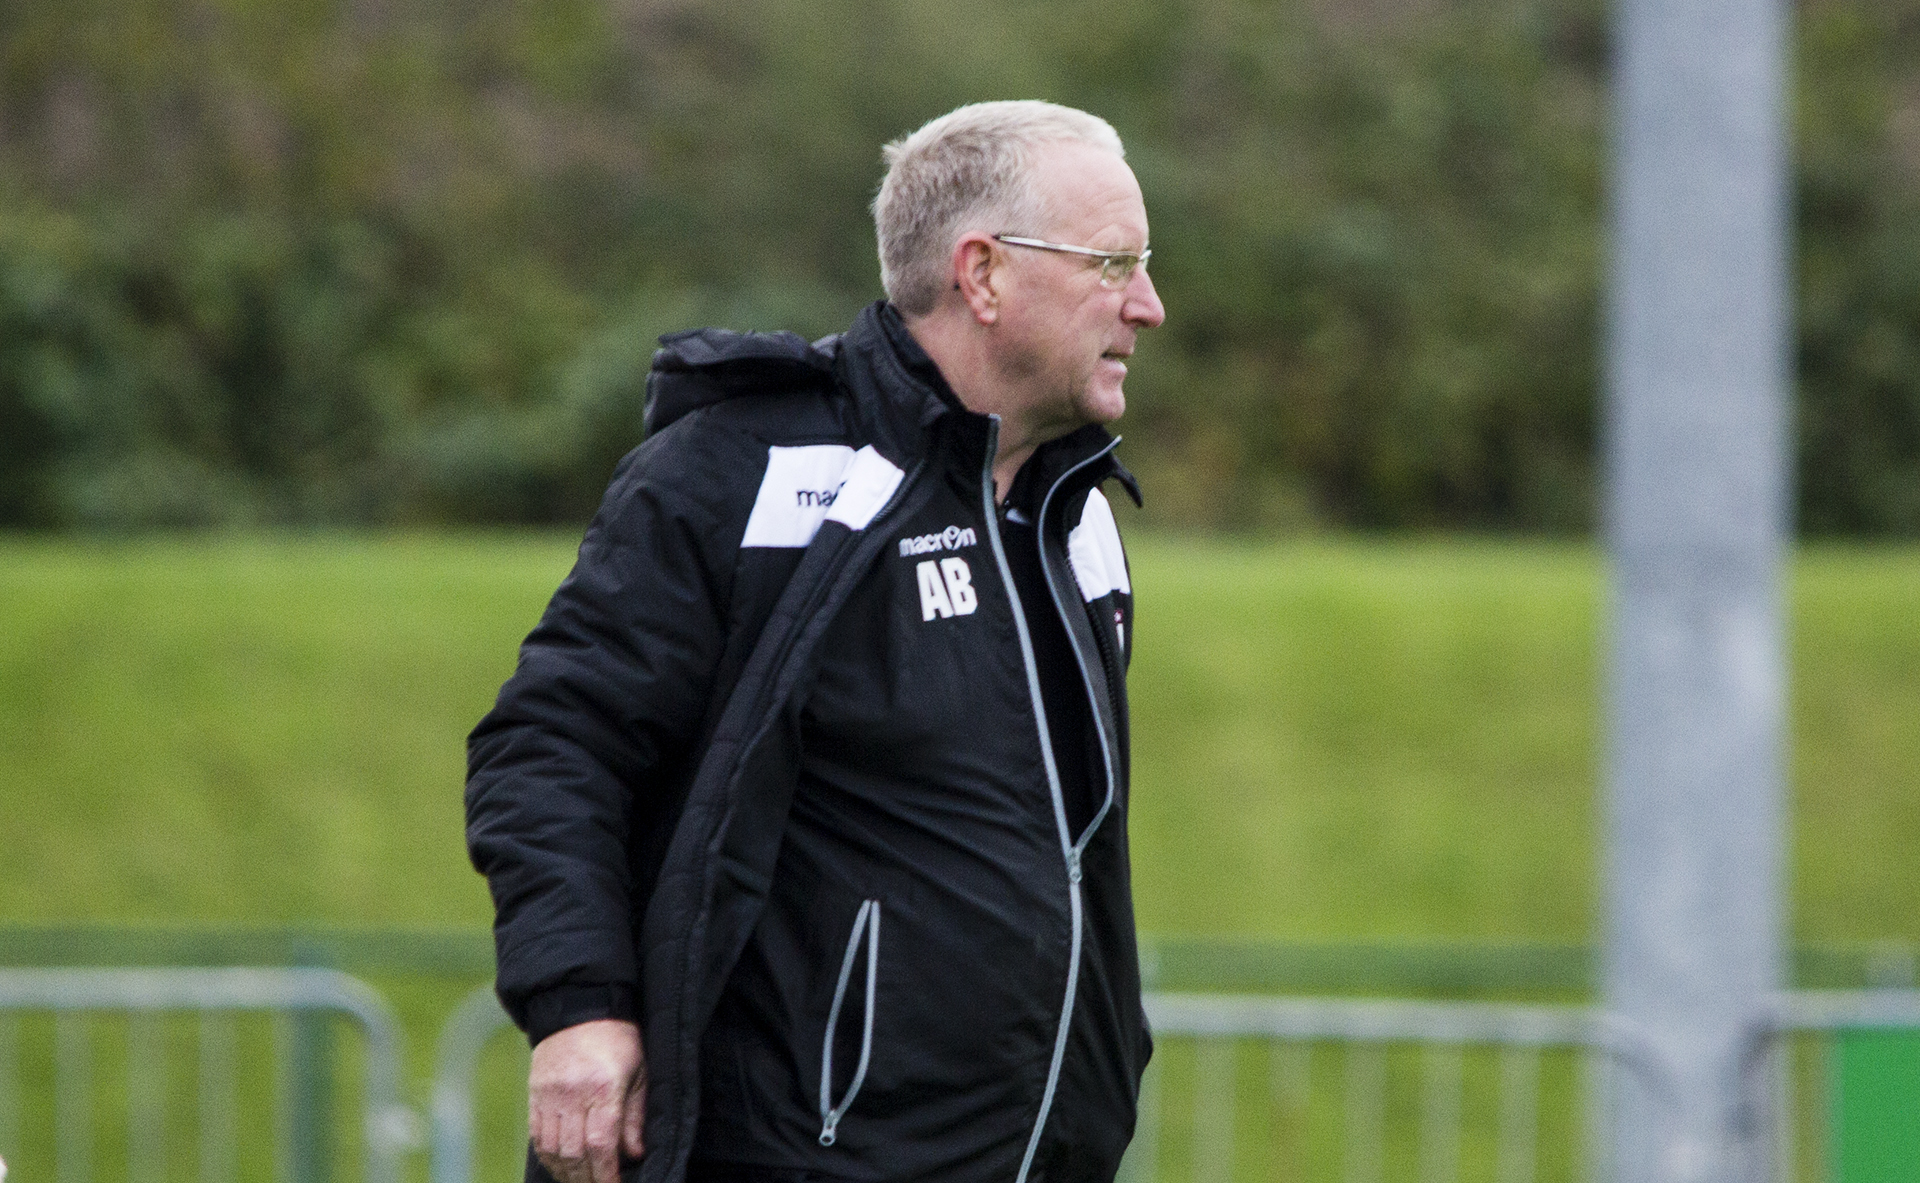 Allan Bickerstaff leaves The Nomads